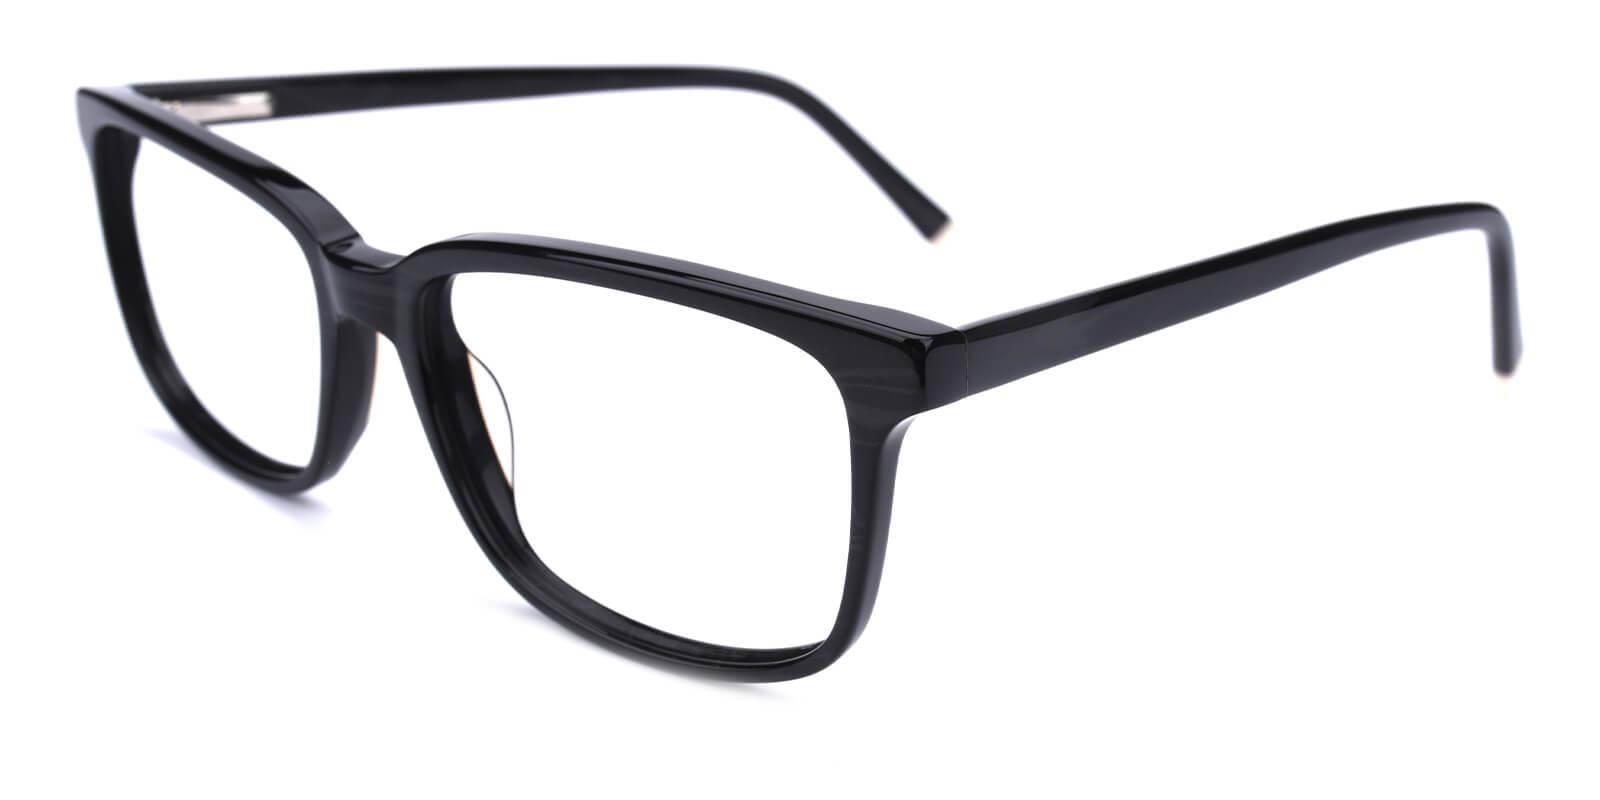 Connotation-Striped-Rectangle-Acetate-Eyeglasses-additional1